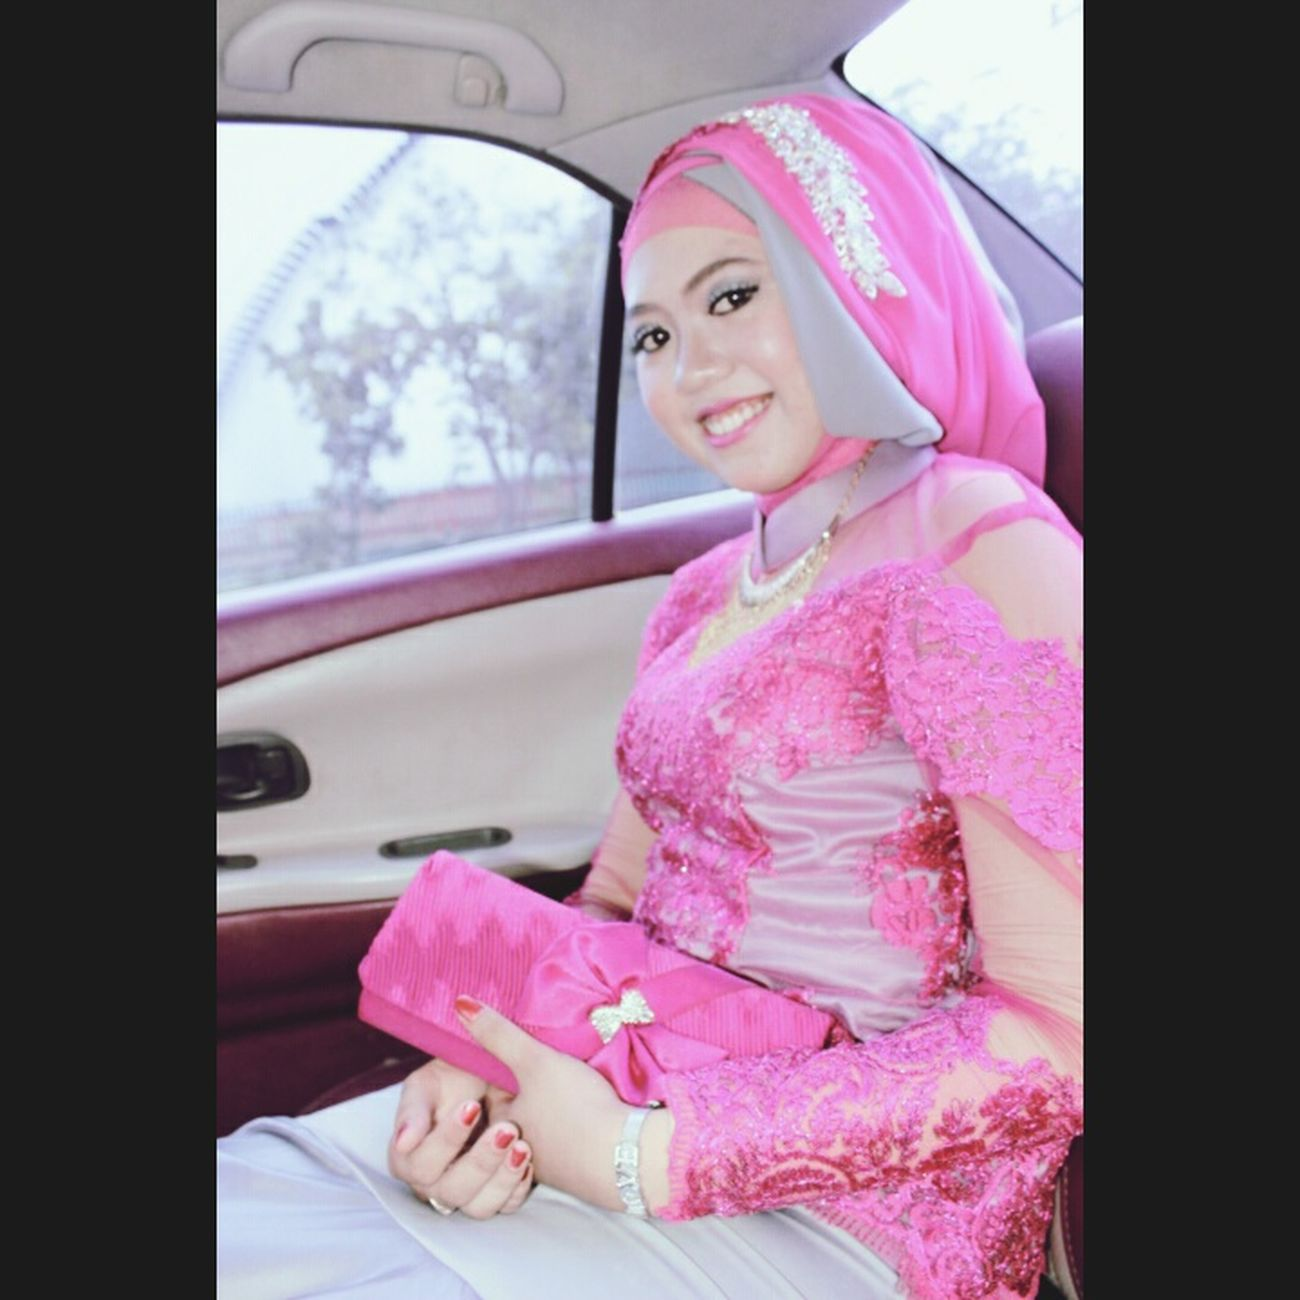 Kebaya Kebaya Indonesia Kebayamodern Kebaya Style Kebaya Fasions Beauty Of Kebaya Kebayapink Fashion Kebaya One Of My Favourite Kebaya Dress Pinklips💋💋💋 Hijabstyle  Indonesian Hijabers Perpisahansekolah